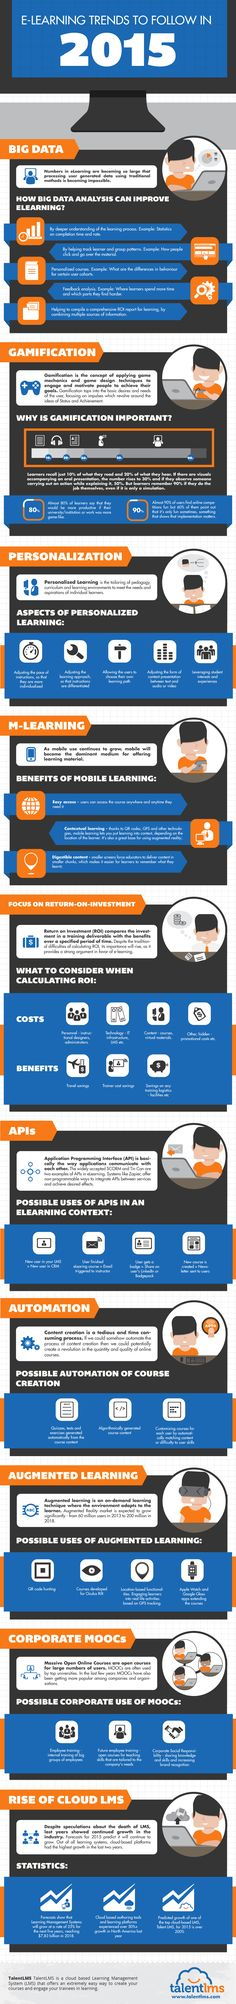 Top 10 eLearning Trends For 2015 Infographic - http://elearninginfographics.com/top-10-elearning-trends-2015-infographic/